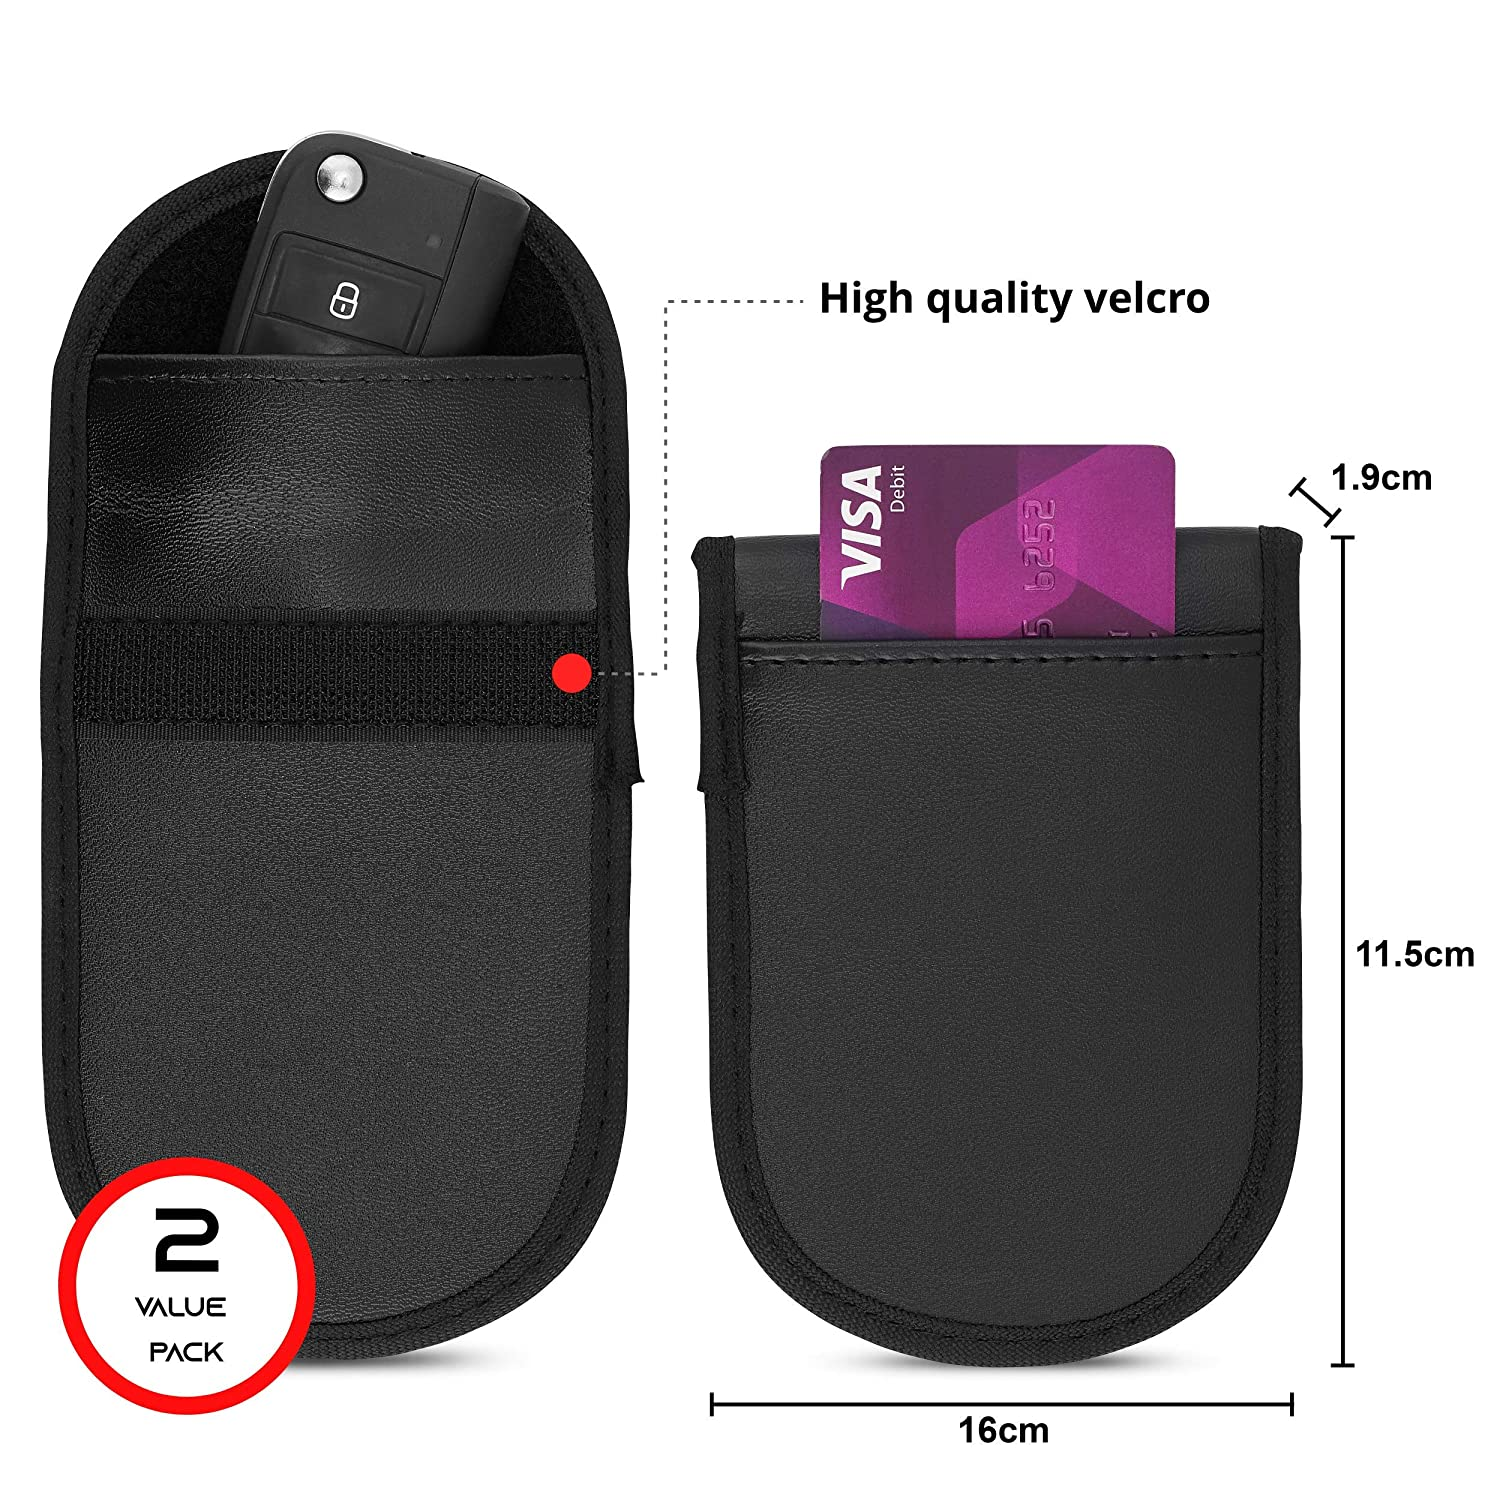 Water Resistance Faraday Bag Protector Anti-theft for Keyless Vehicle Fobs SCHILD 2x Premium RFID Car Signal Blocking Pouch Blocker for Car Keys